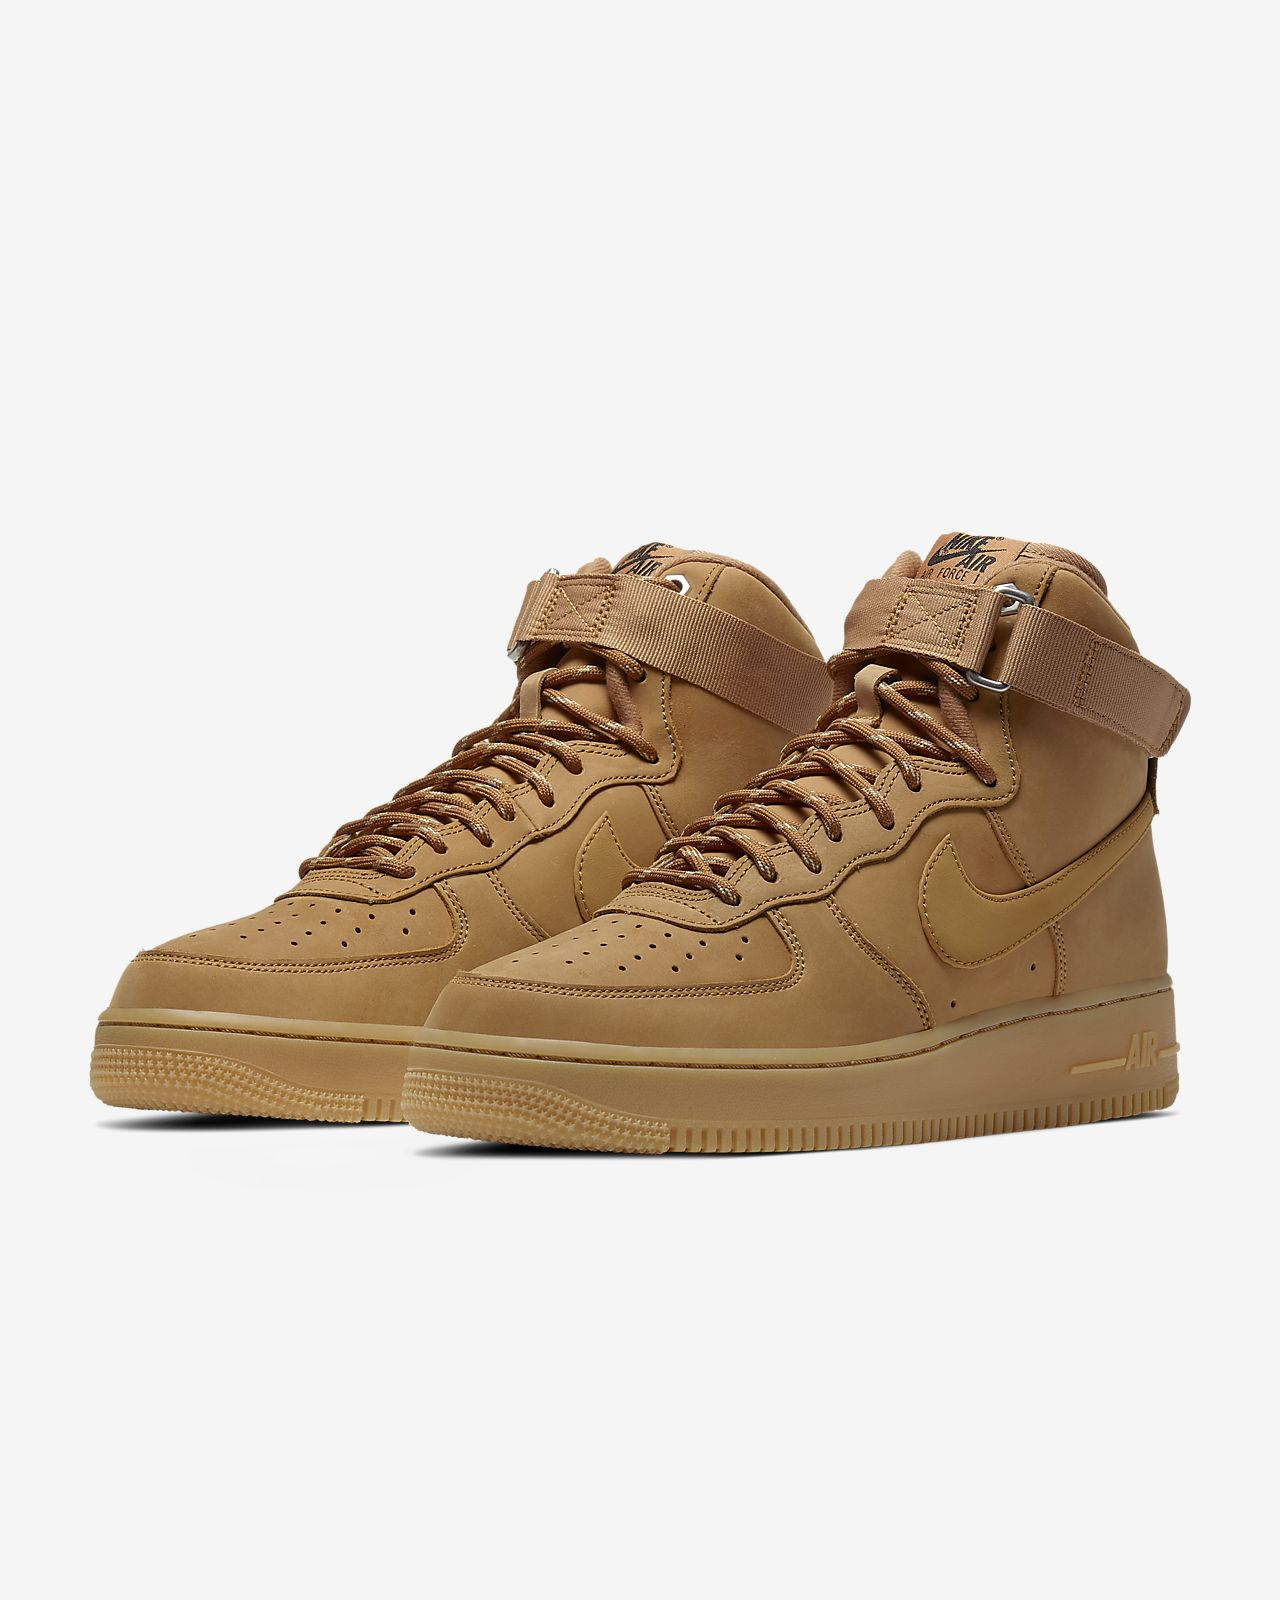 Nike Air Force 1 High 07 WB